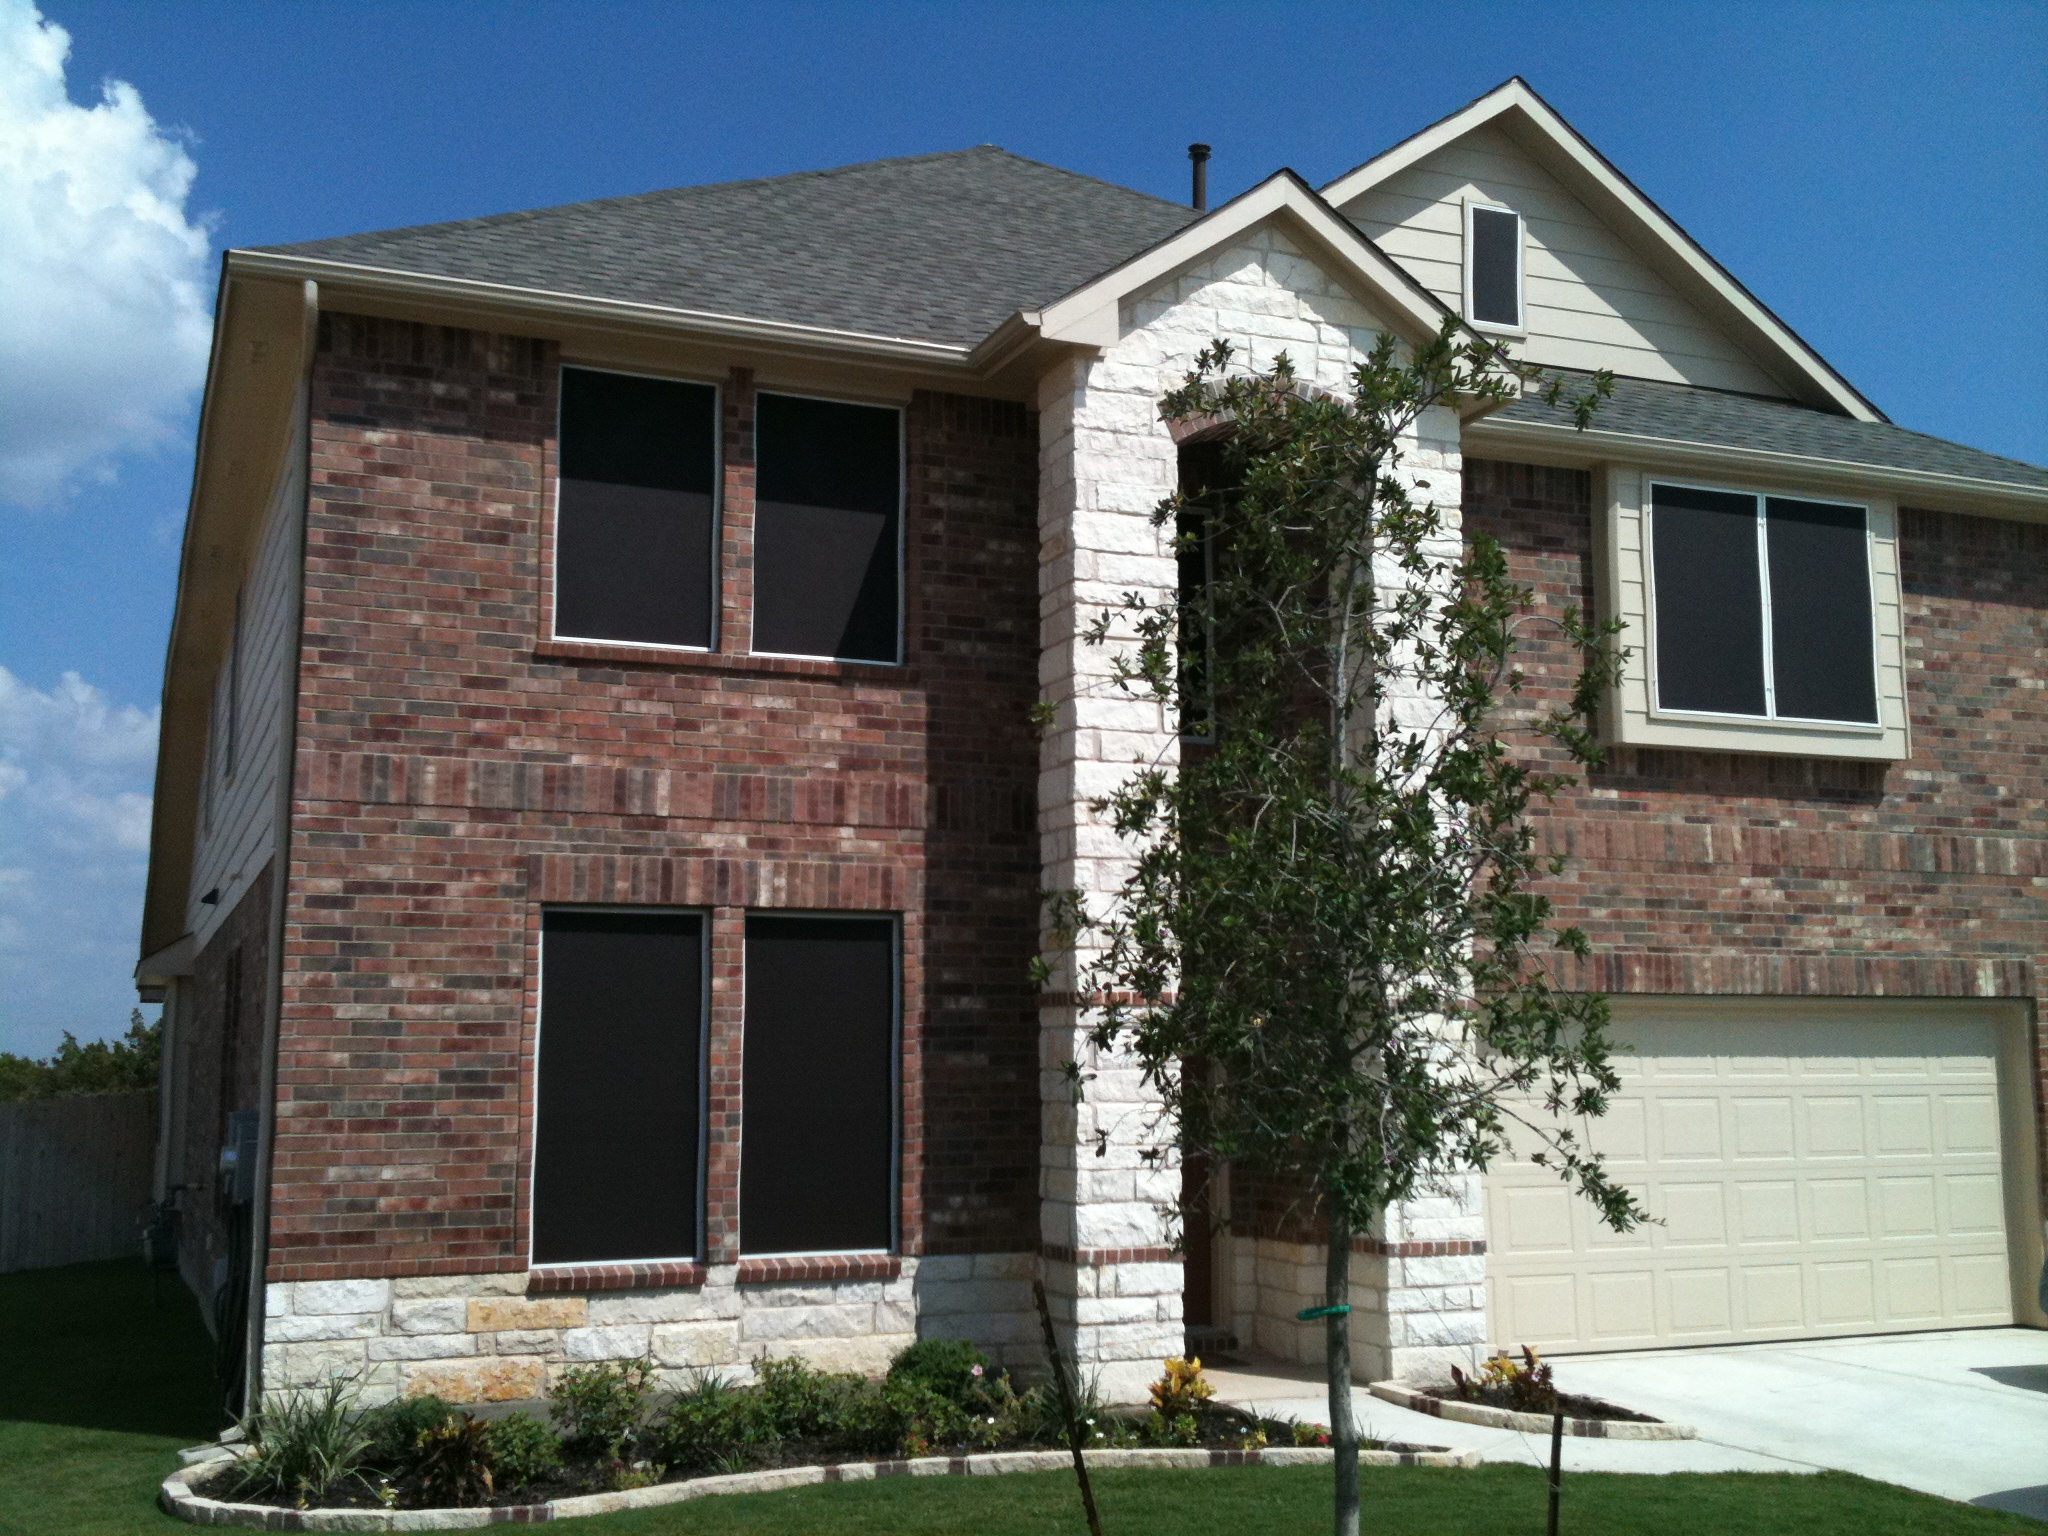 These Are Chocolate Solar Screens 90 Percent With White Framing This Is The Right Color Combination For Round Rock Texas